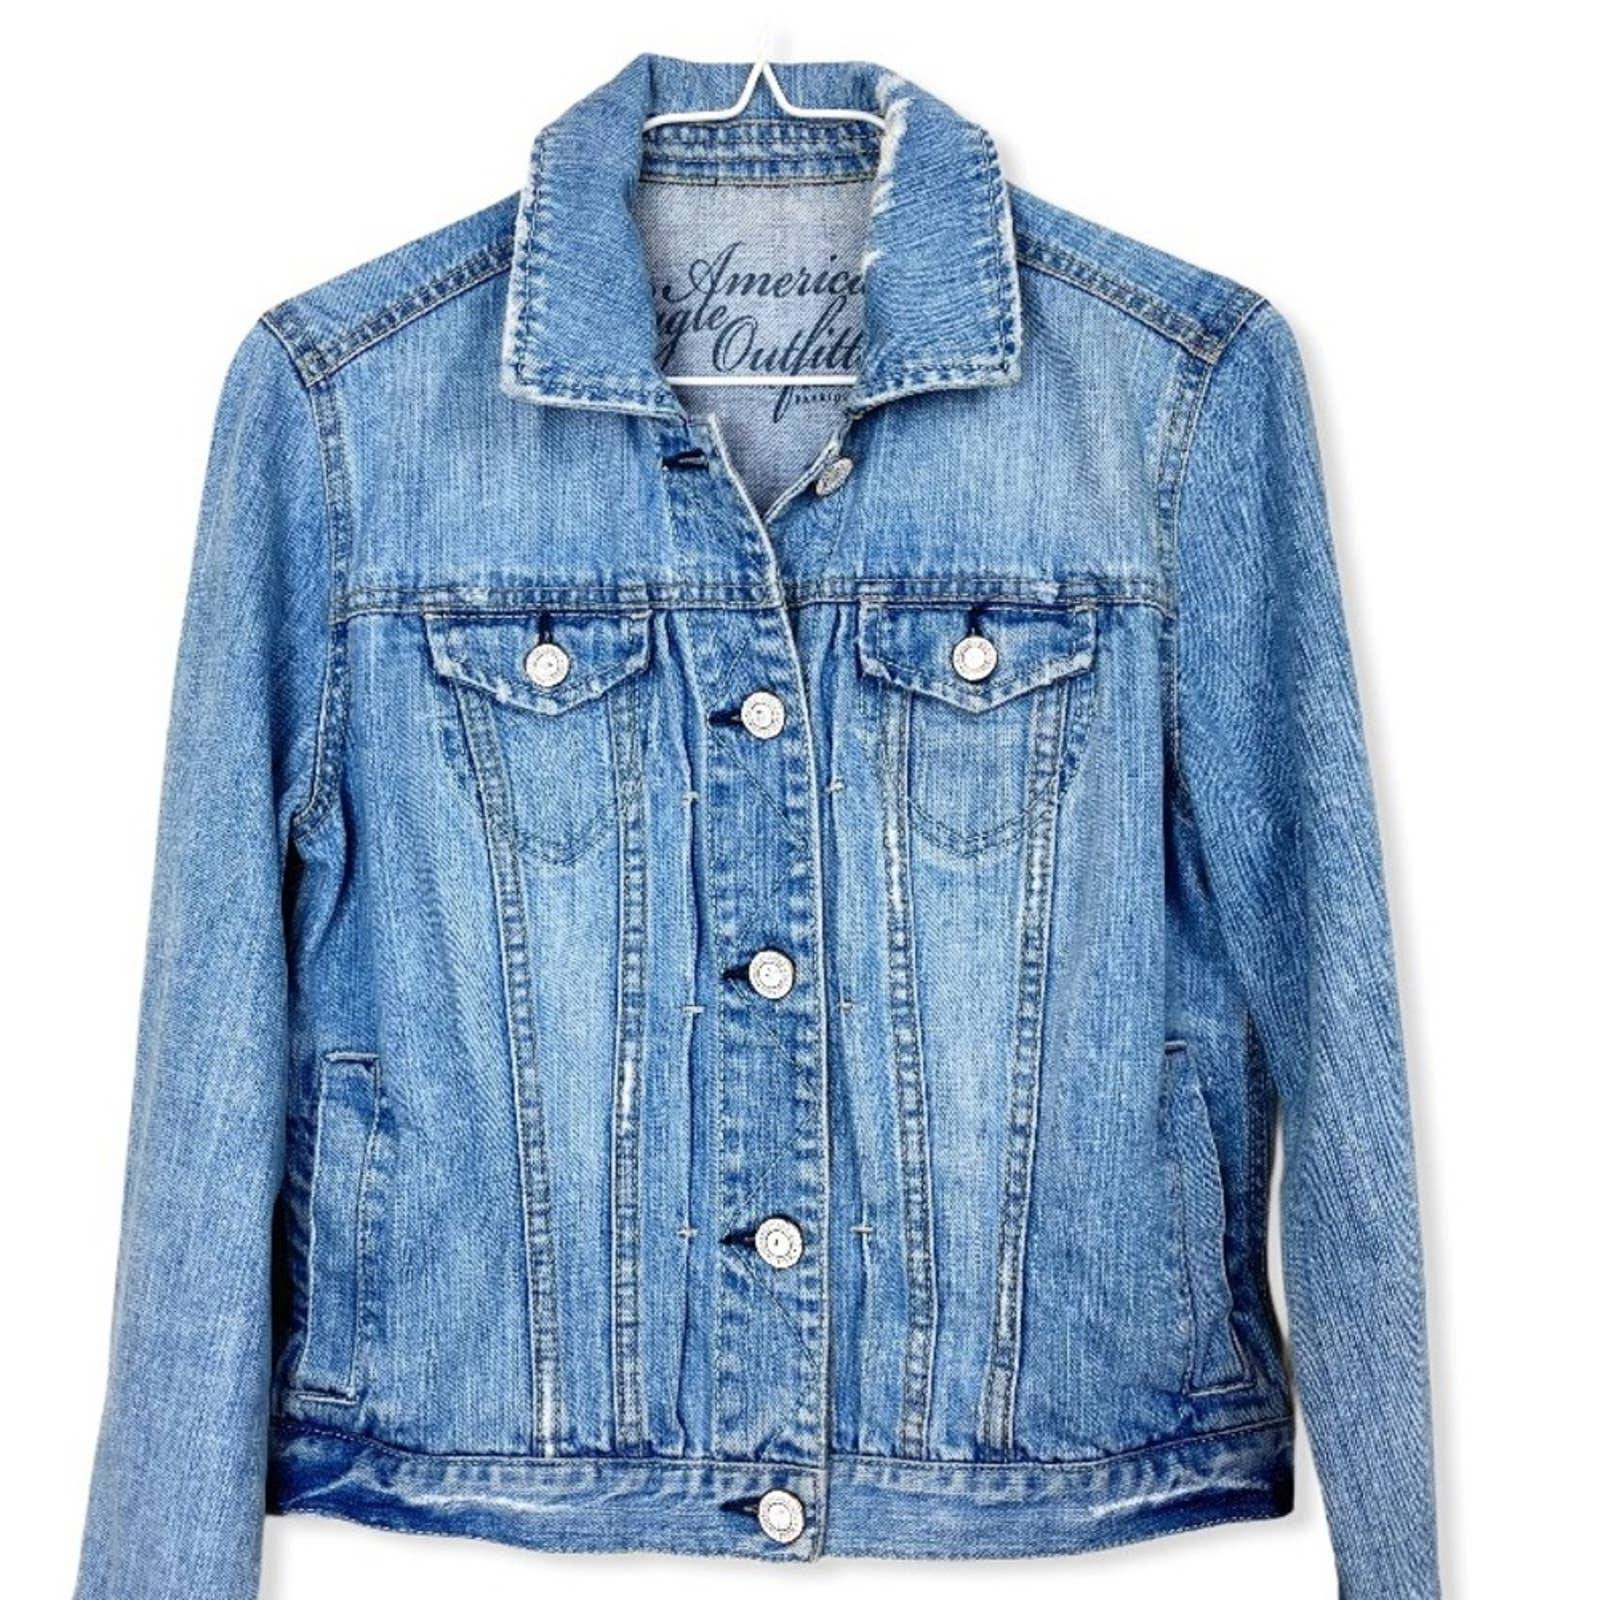 AEO Distressed Denim Jean Jacket Medium